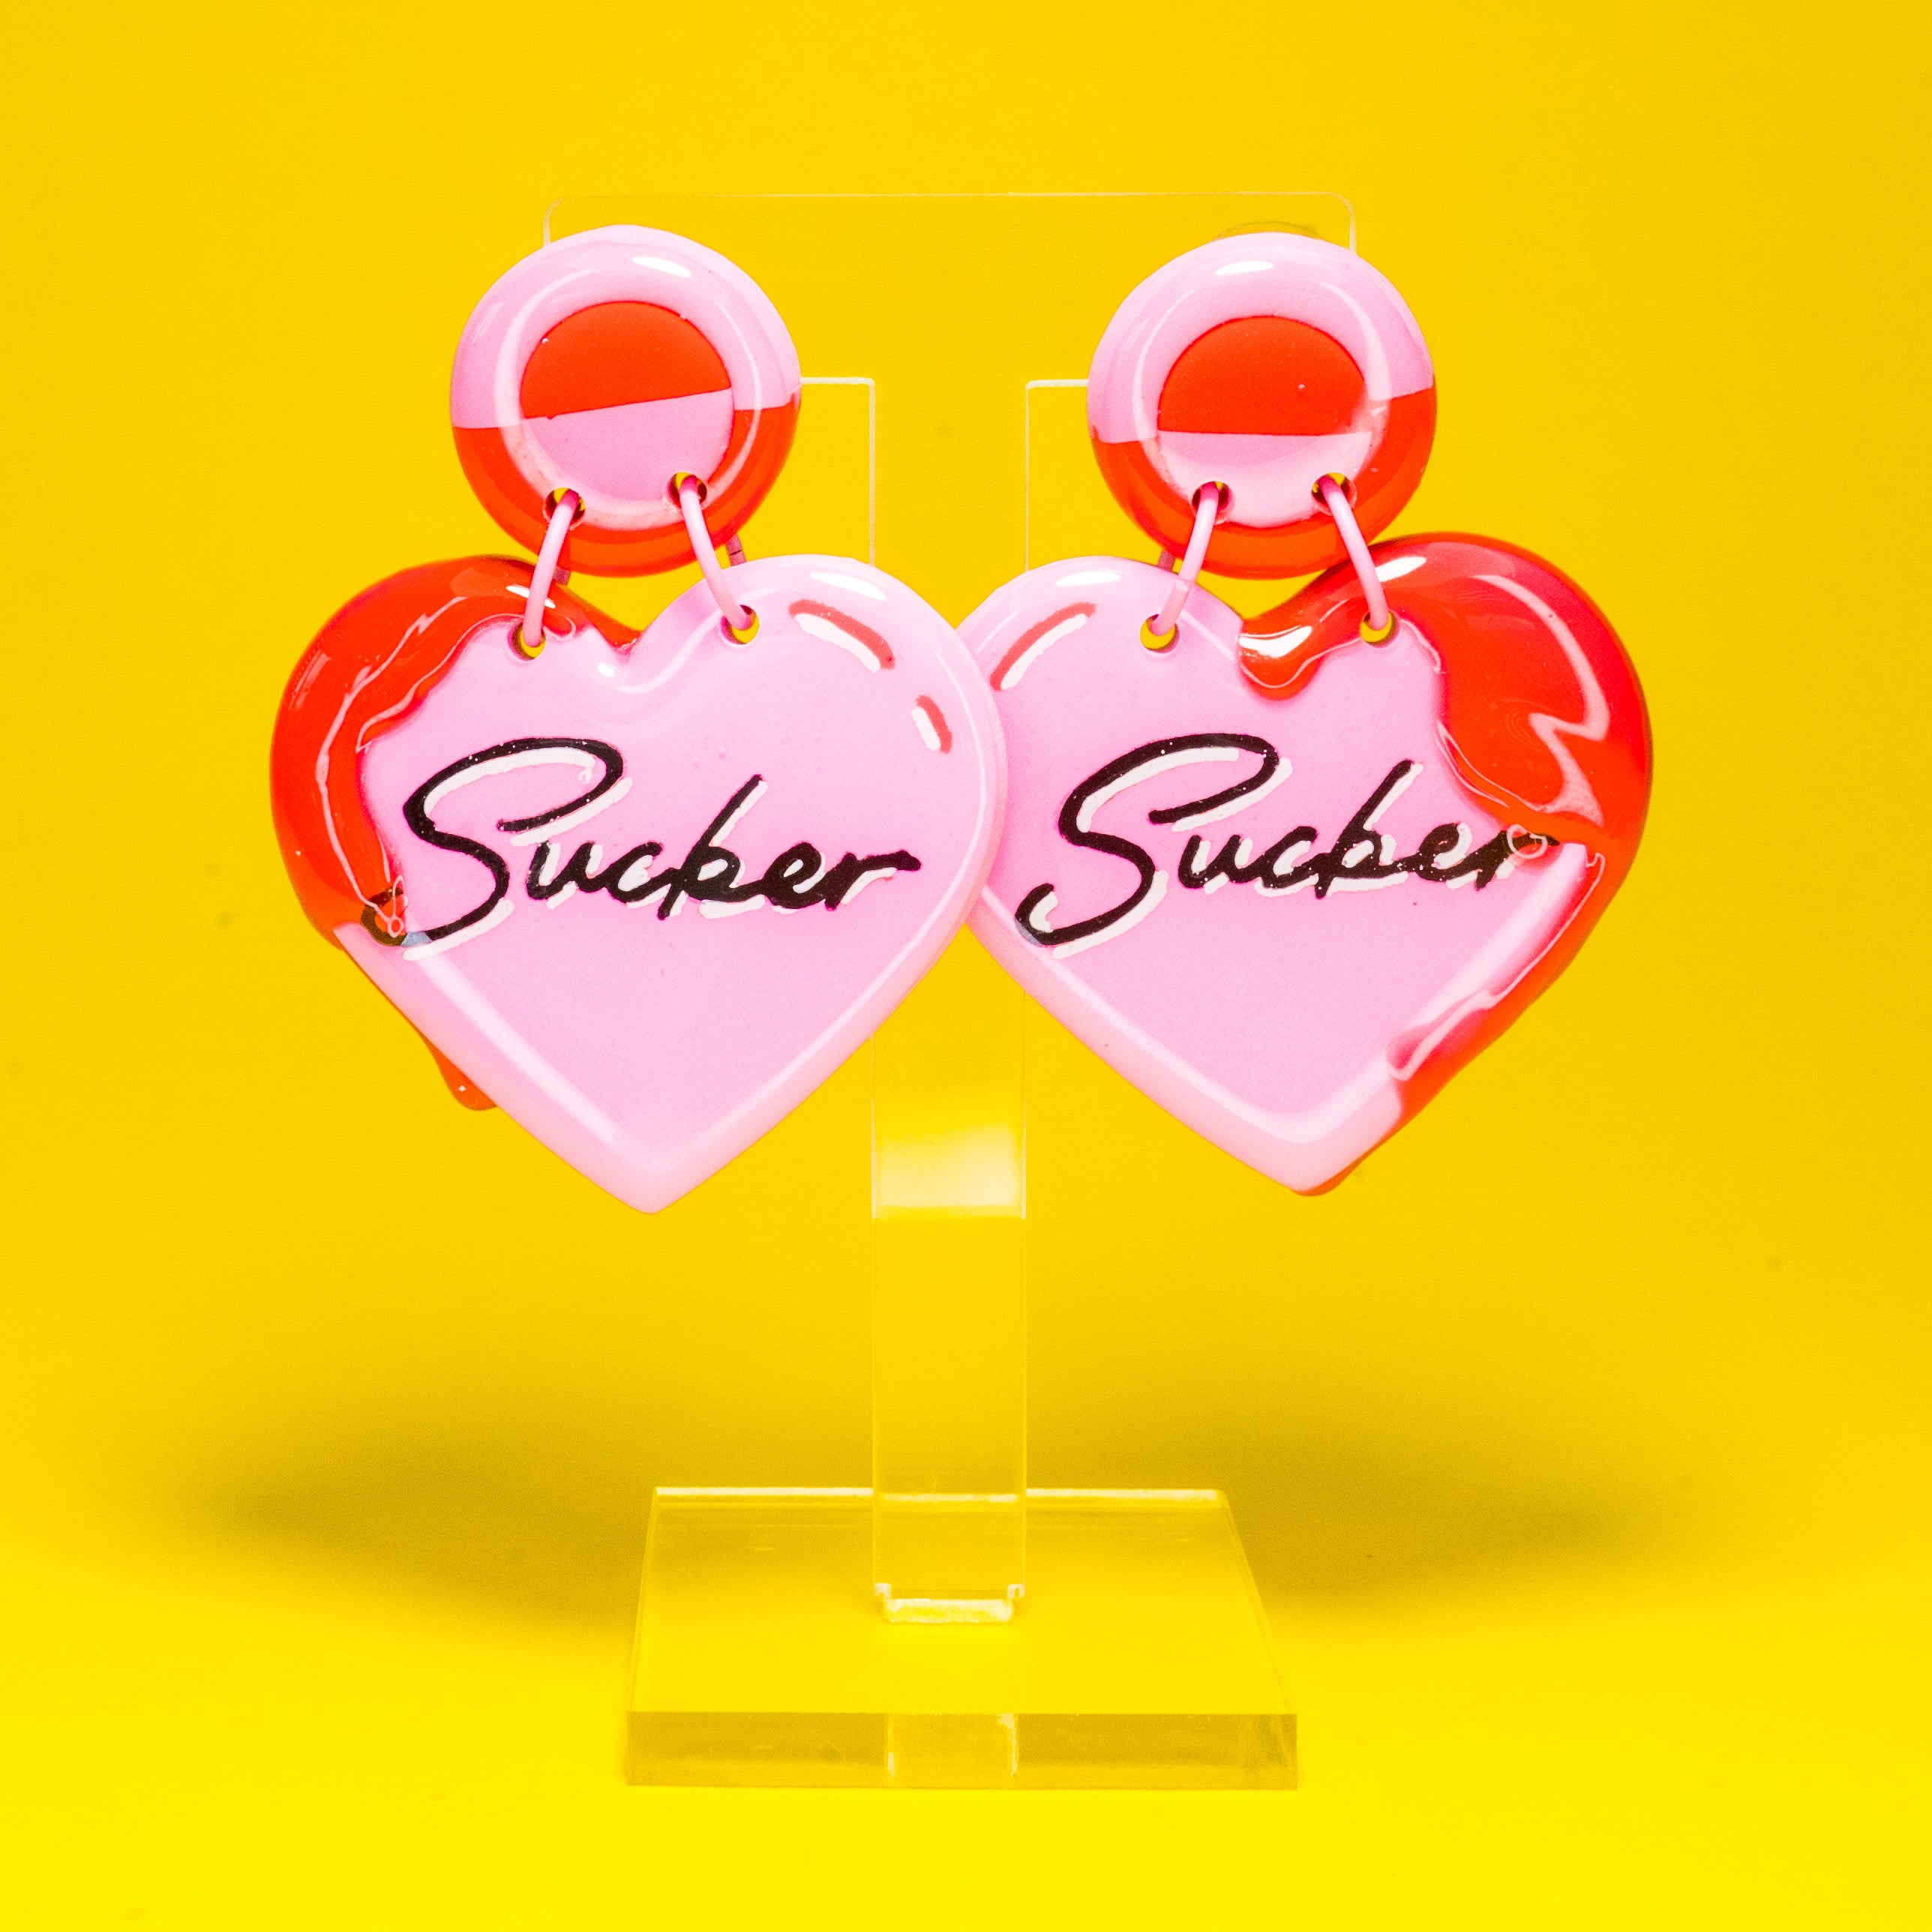 Sucker pink heart dangles